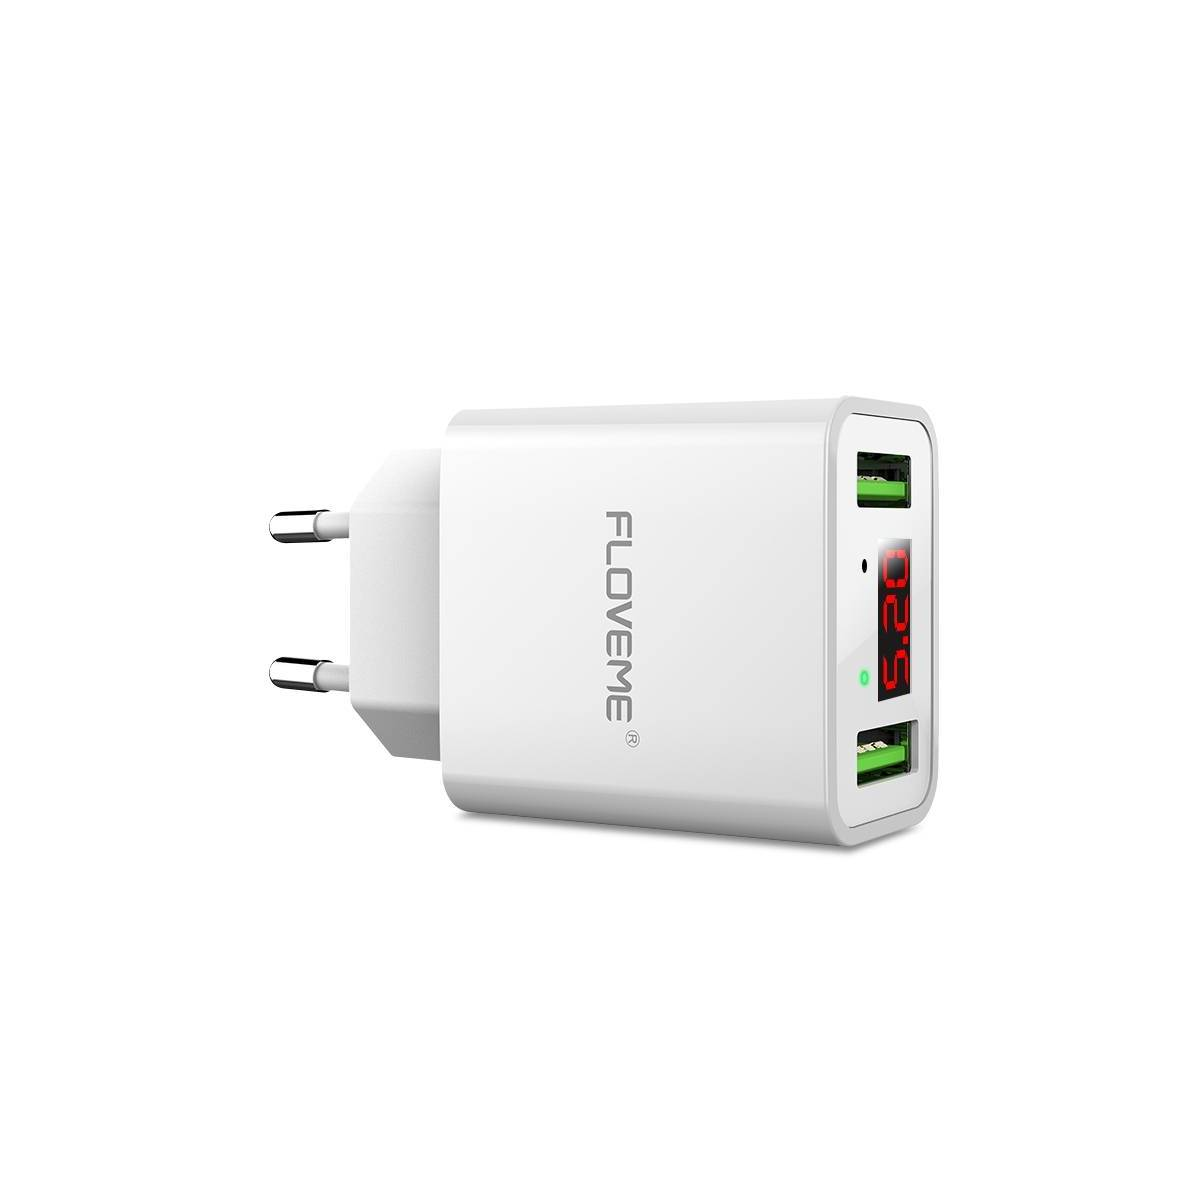 12W 2A Fast USB Mobil Laddare till iPhone 6 6s 5 5s 7 8 X Plus iPad Tablet Laddare Portabel Snabb Laddning USB Power Adapter